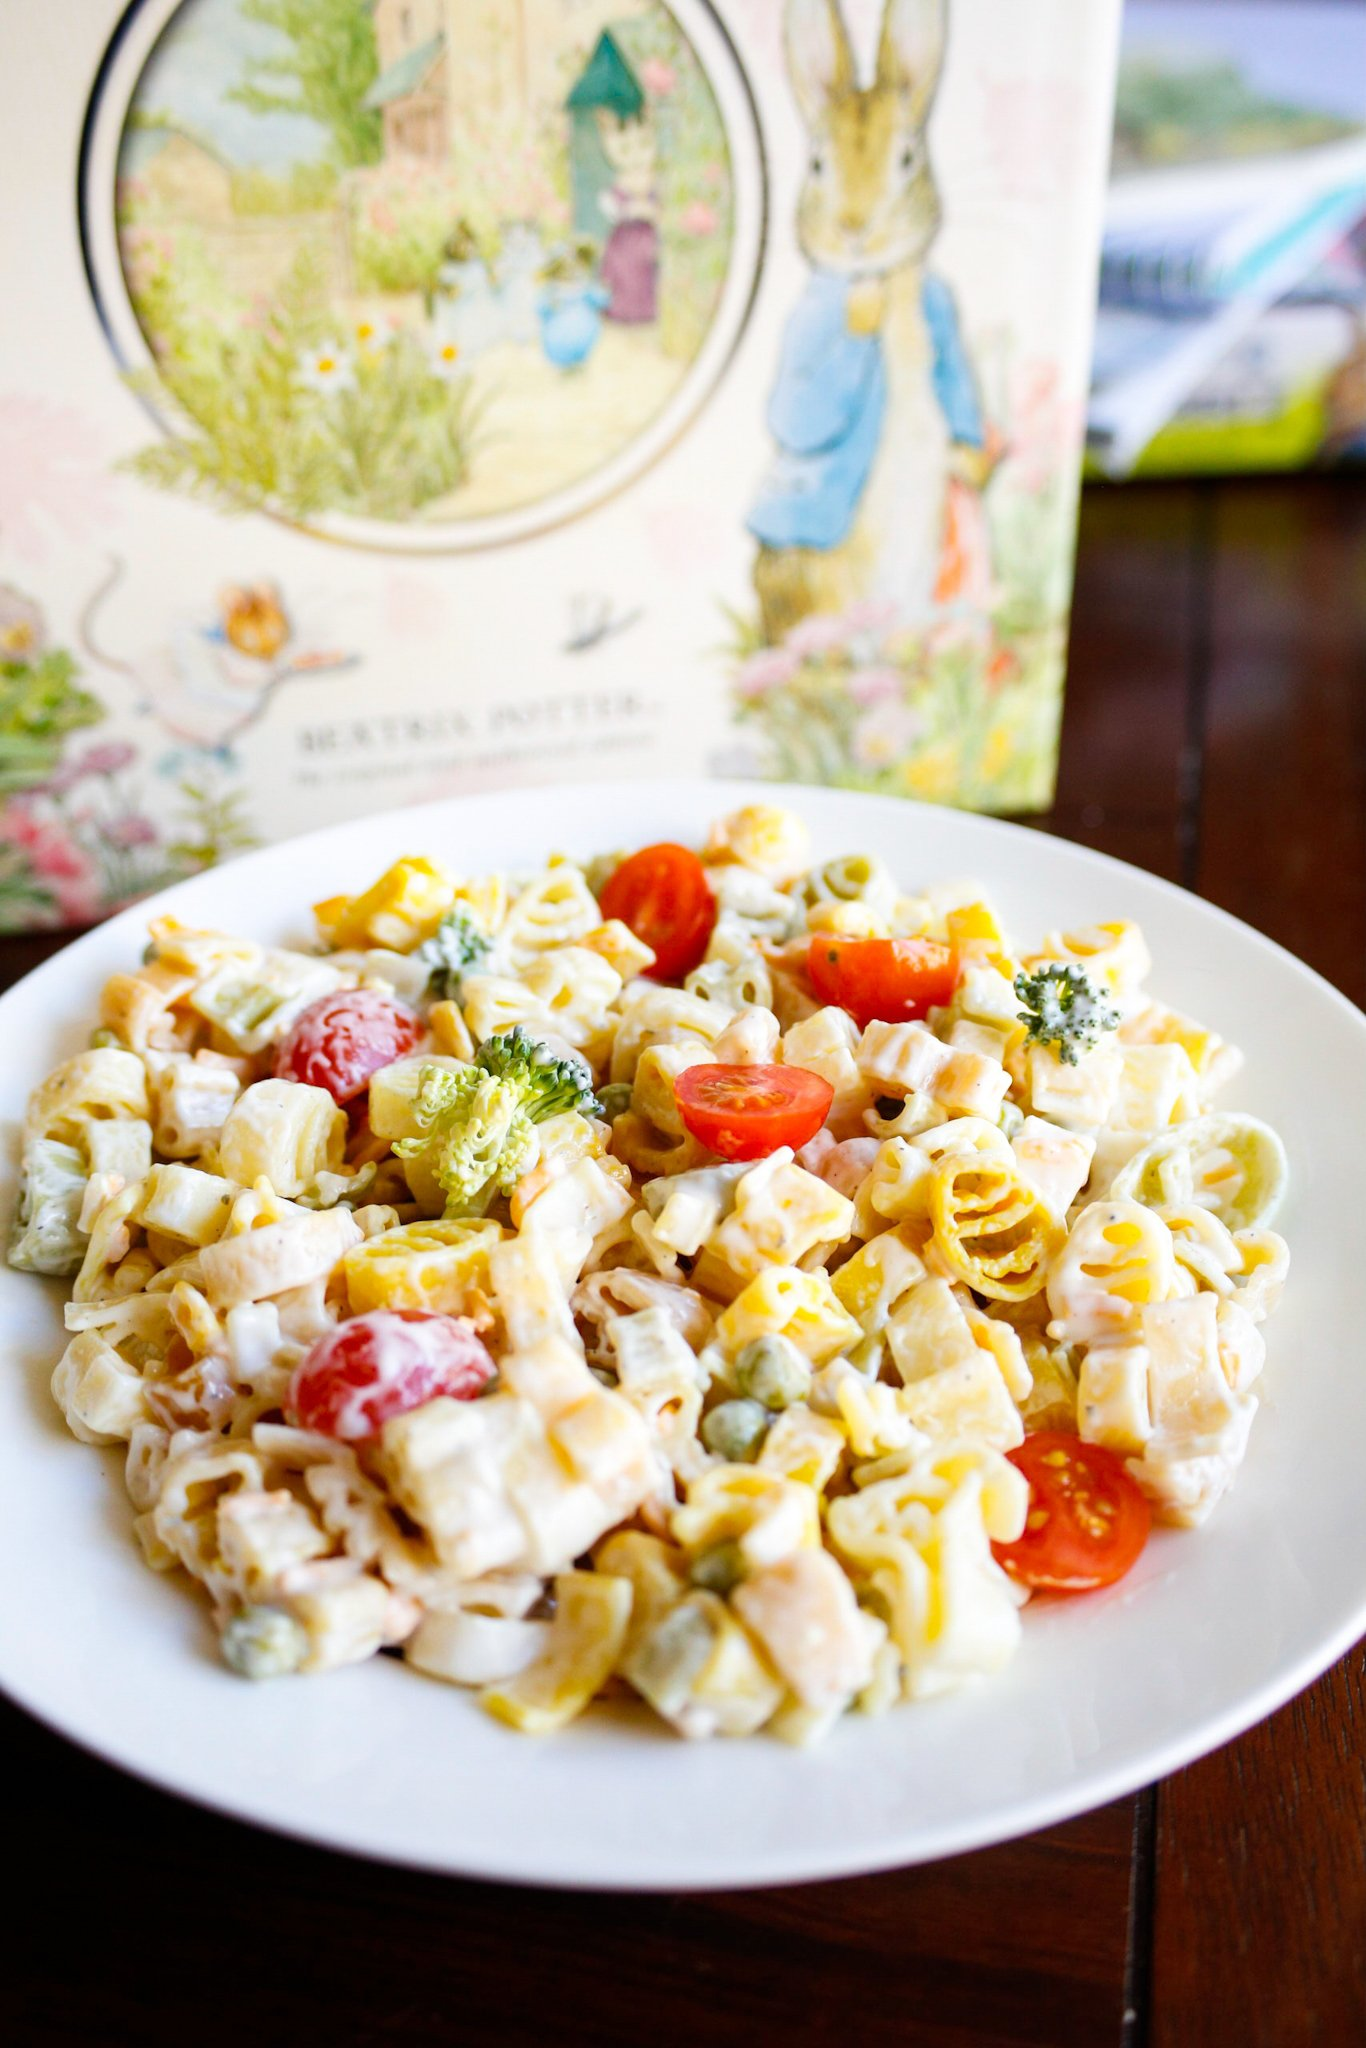 Do your kids love Peter Rabbit?  Whip up this pasta salad recipe for a fun surprise with Peter Rabbit pasta shapes. #PeterRabbit #WorldMarketTribe